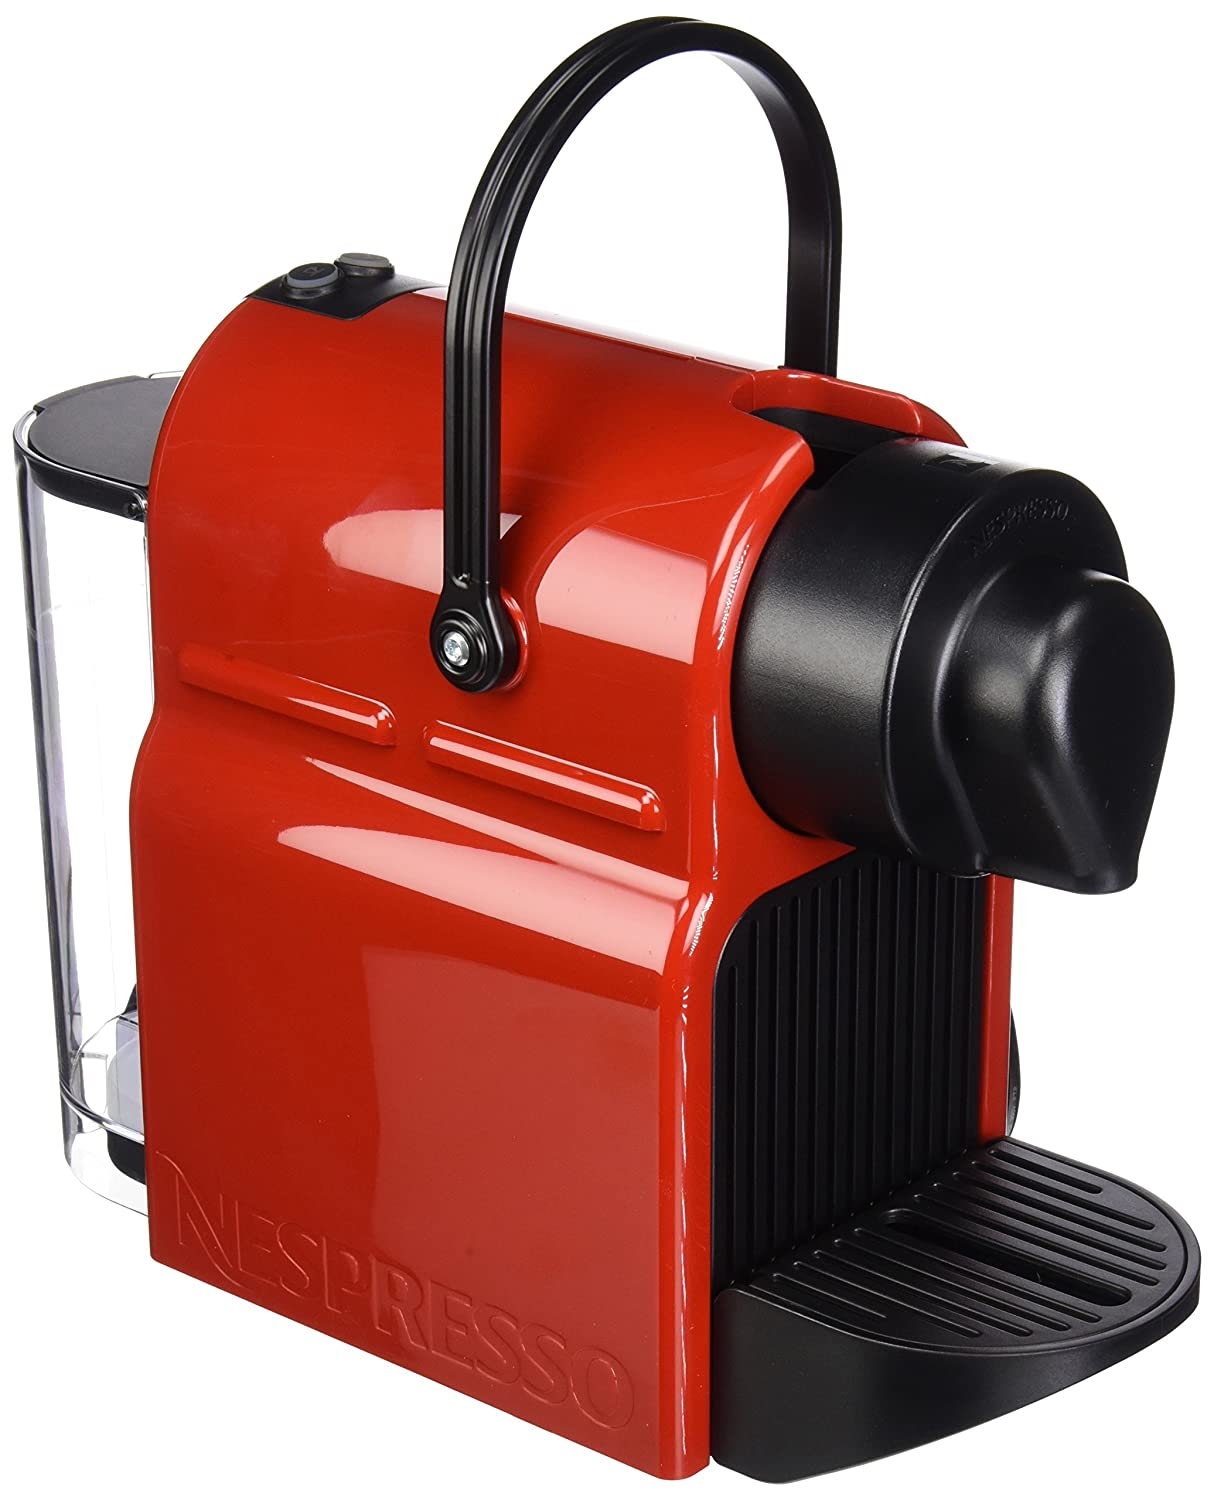 Nespresso Inissia Espresso Maker, Red (Discontinued Model)